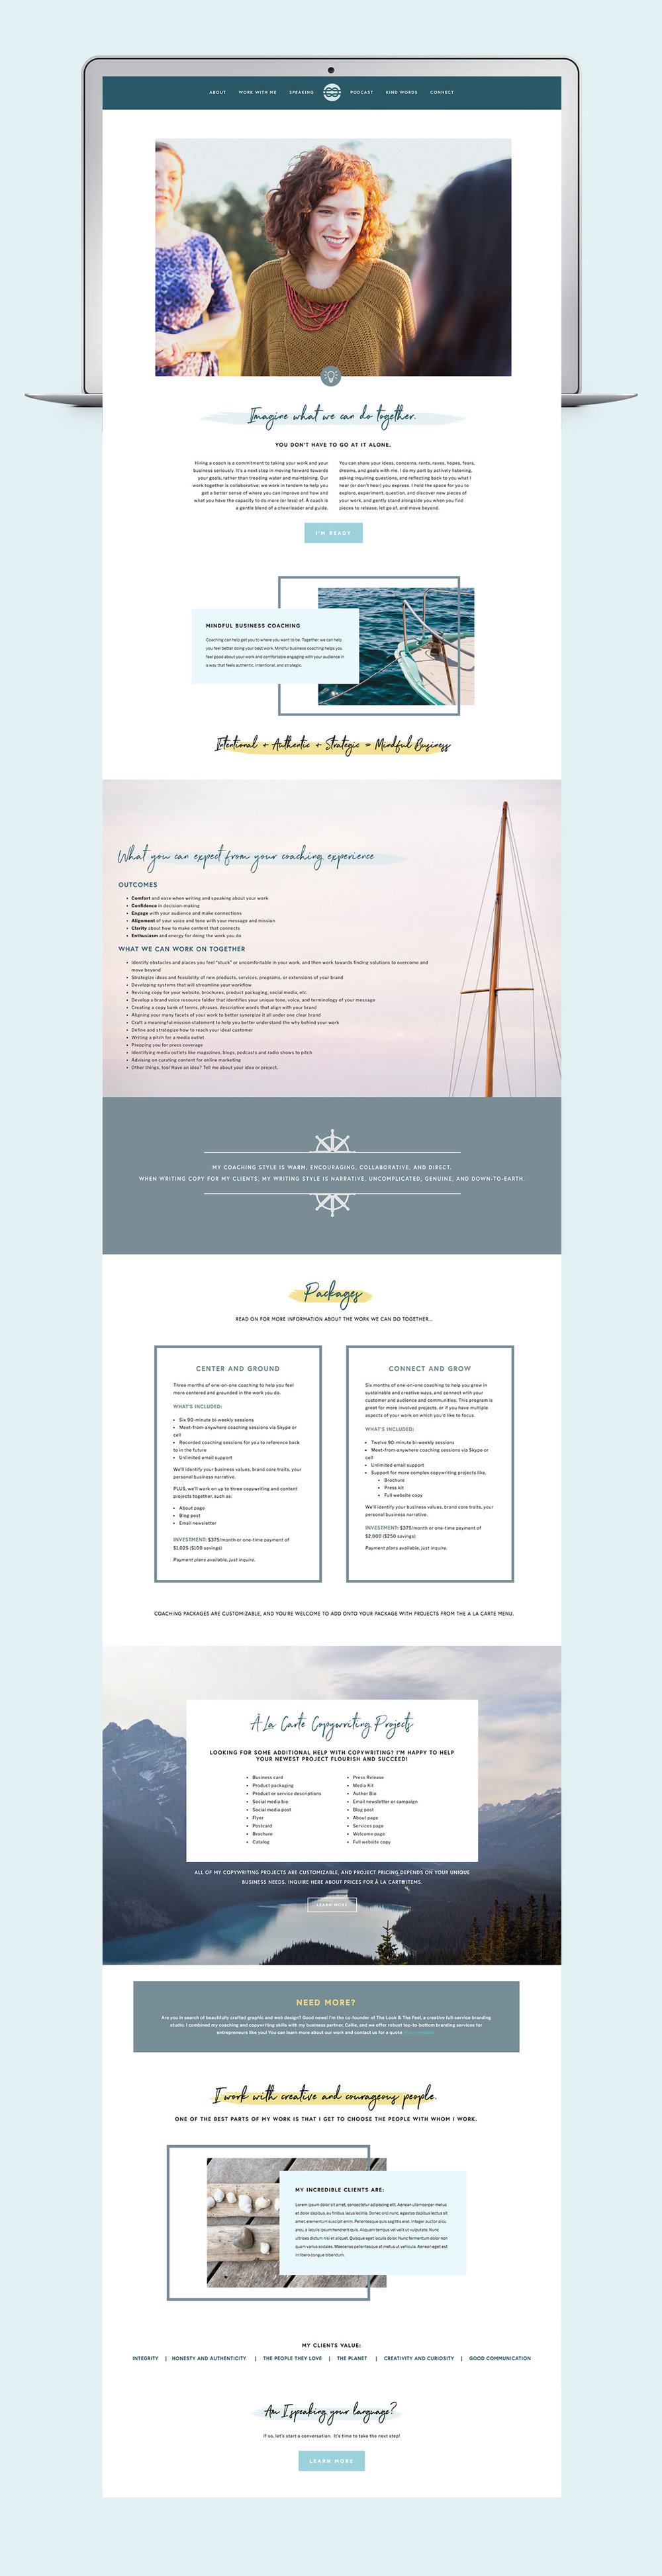 Custom Squarespace design for your online business.